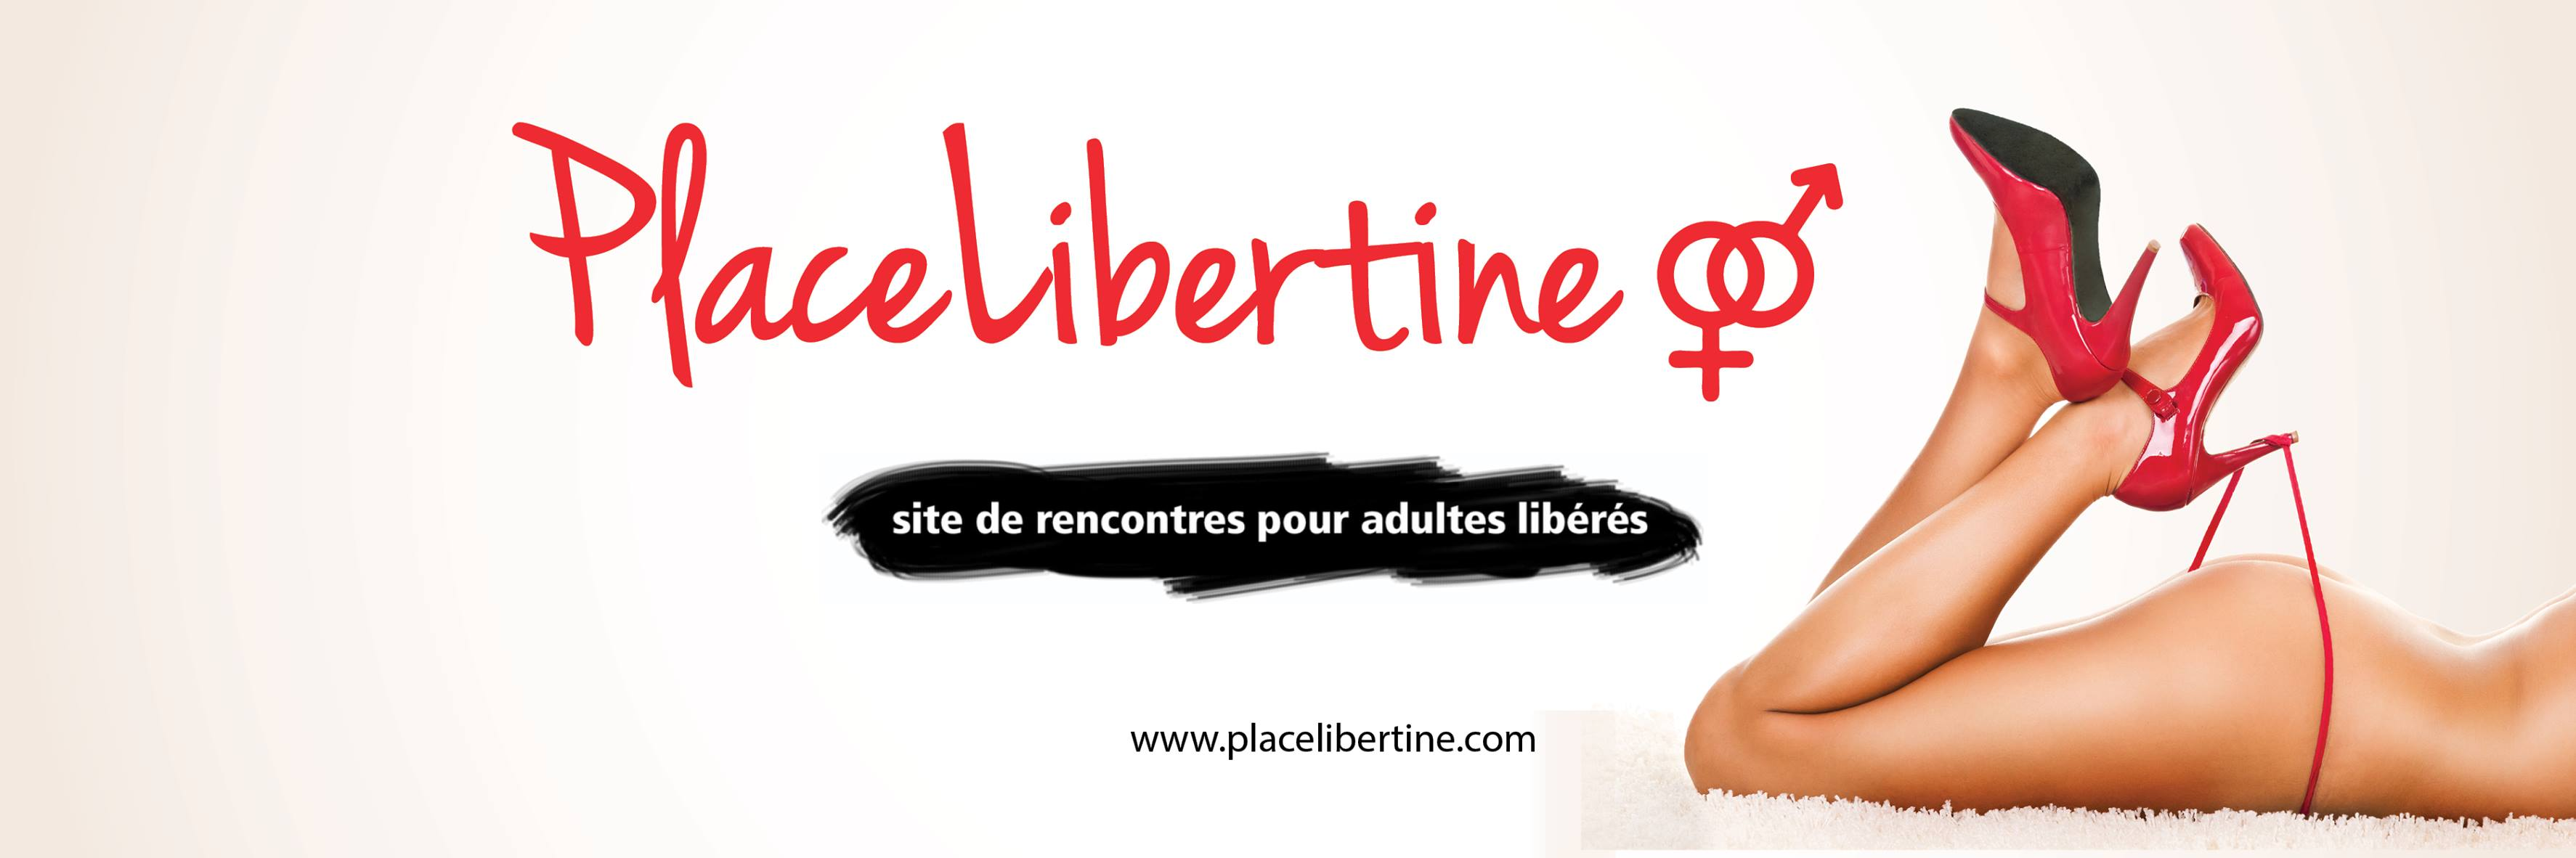 inscription site de rencontre placelinertine